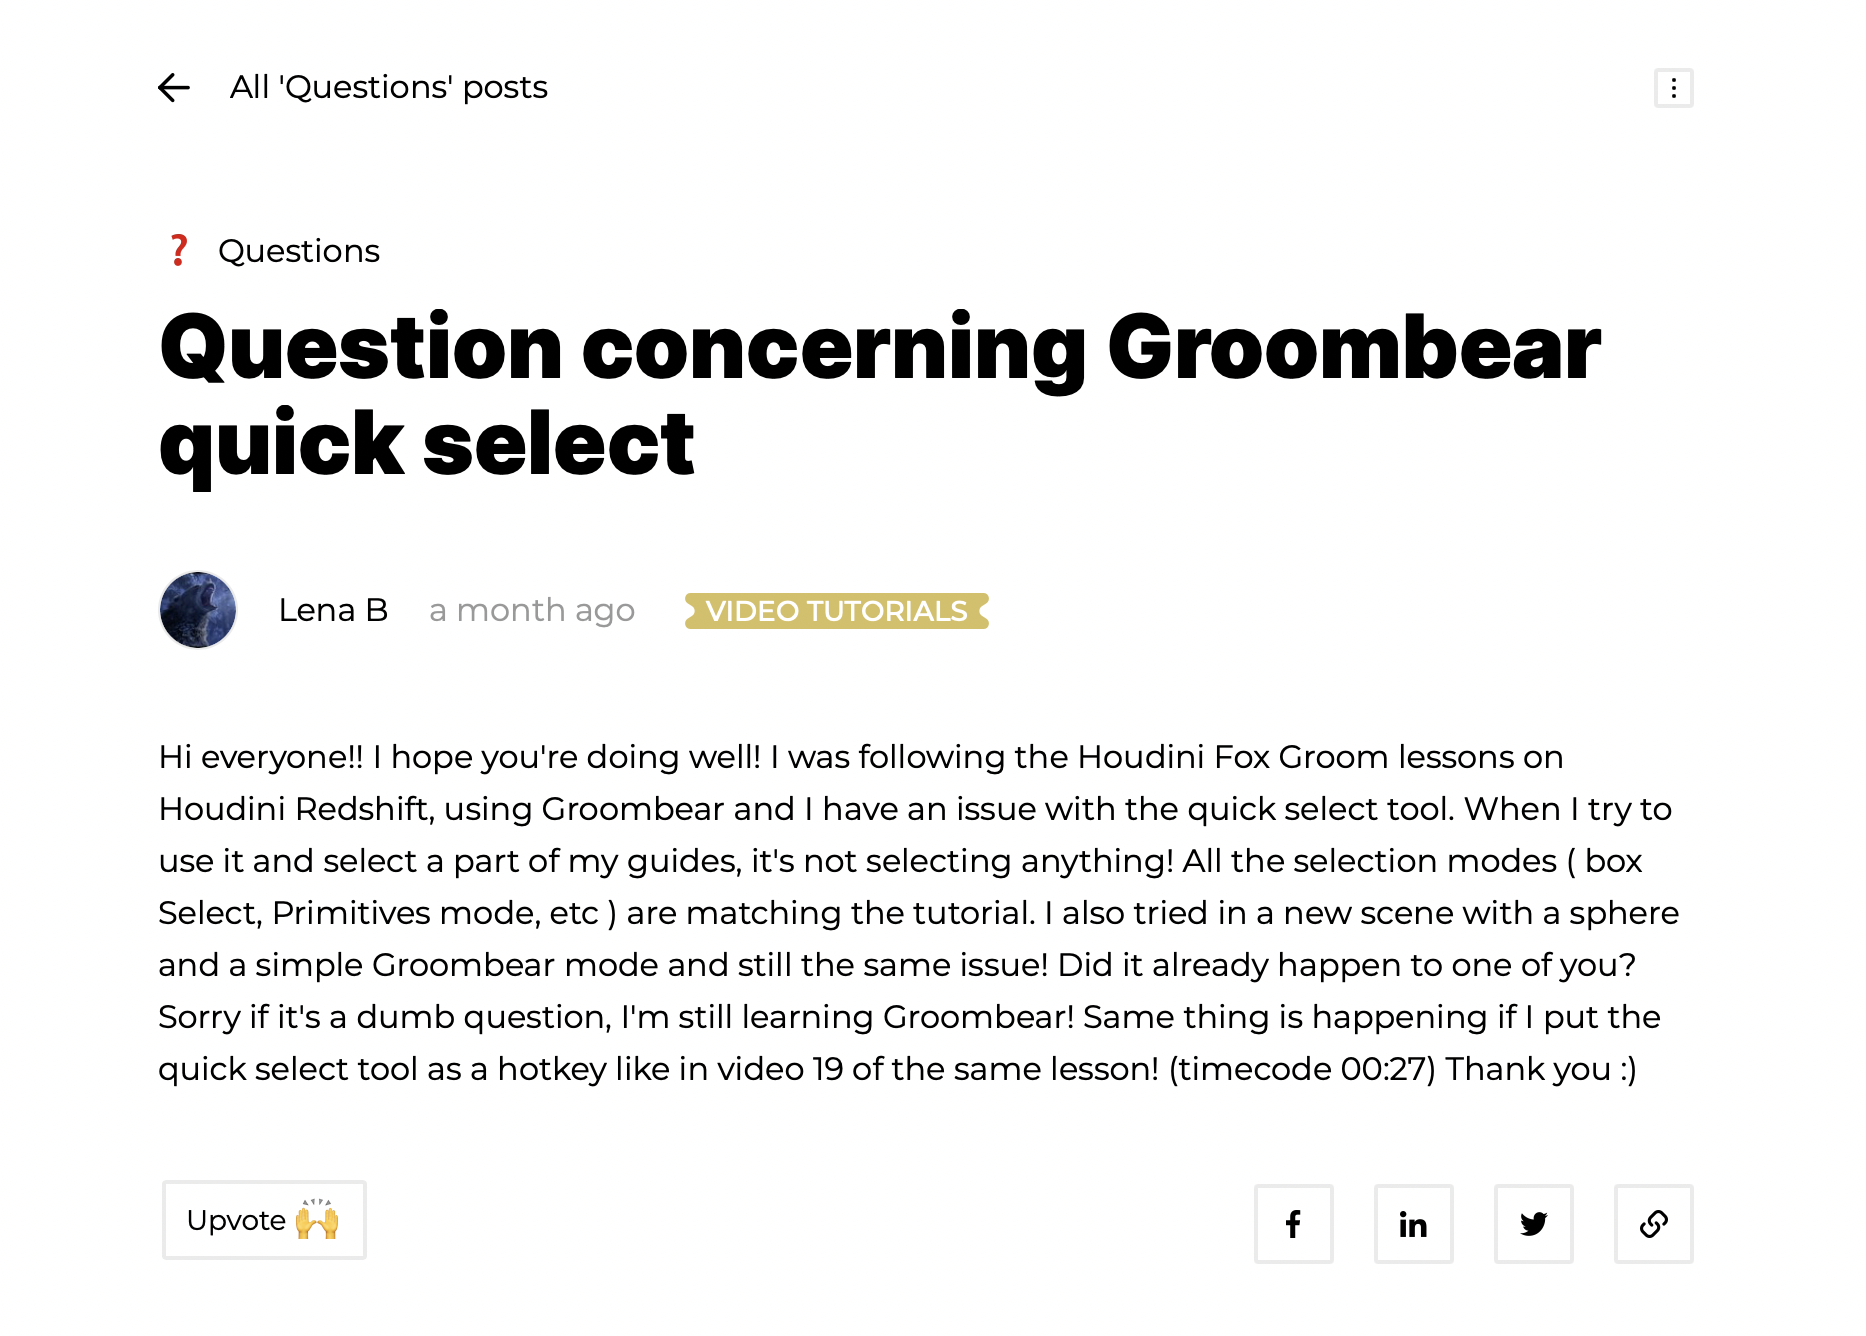 Questions in a blog post